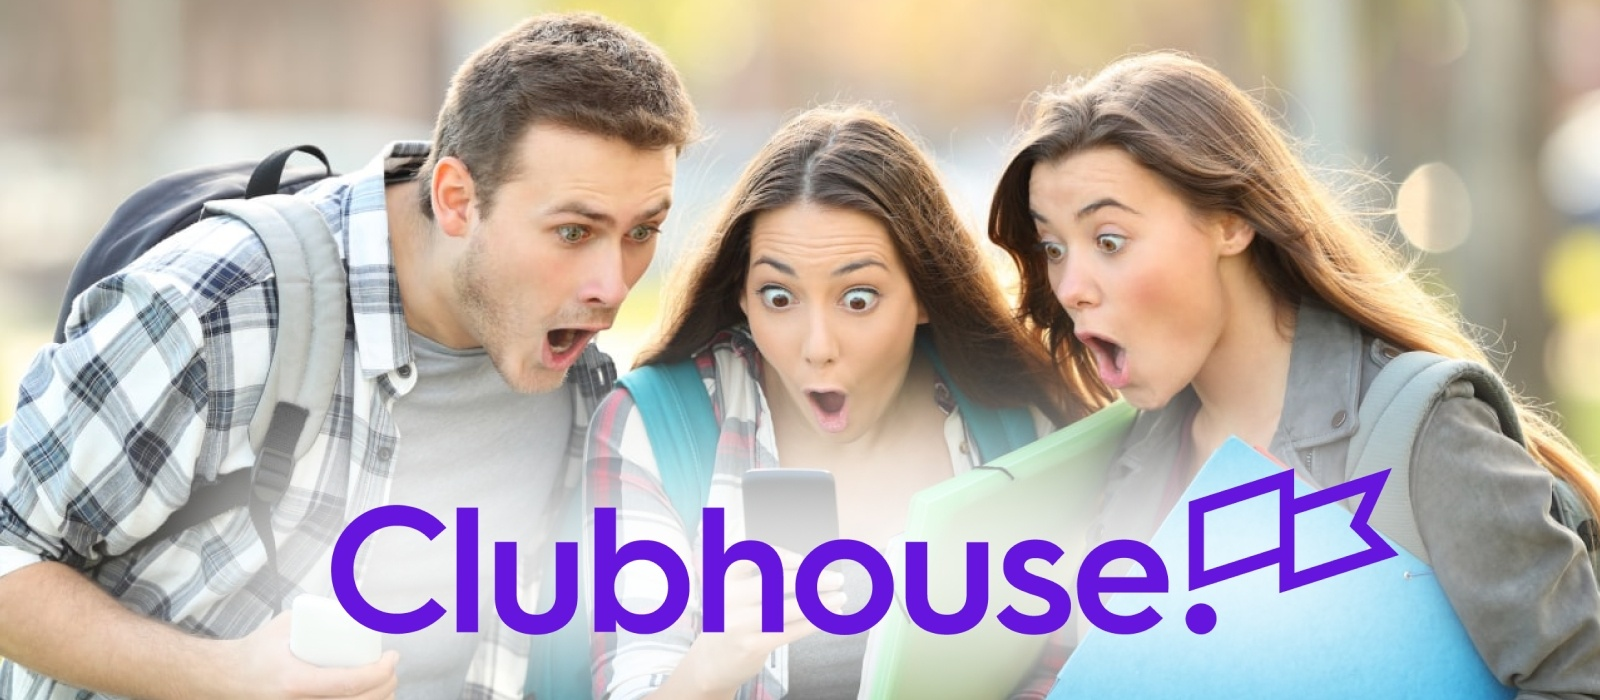 Clubhouse: A social network to chill with Musk, Zuckerberg and Jared Leto. But you won't be allowed there - and here's why